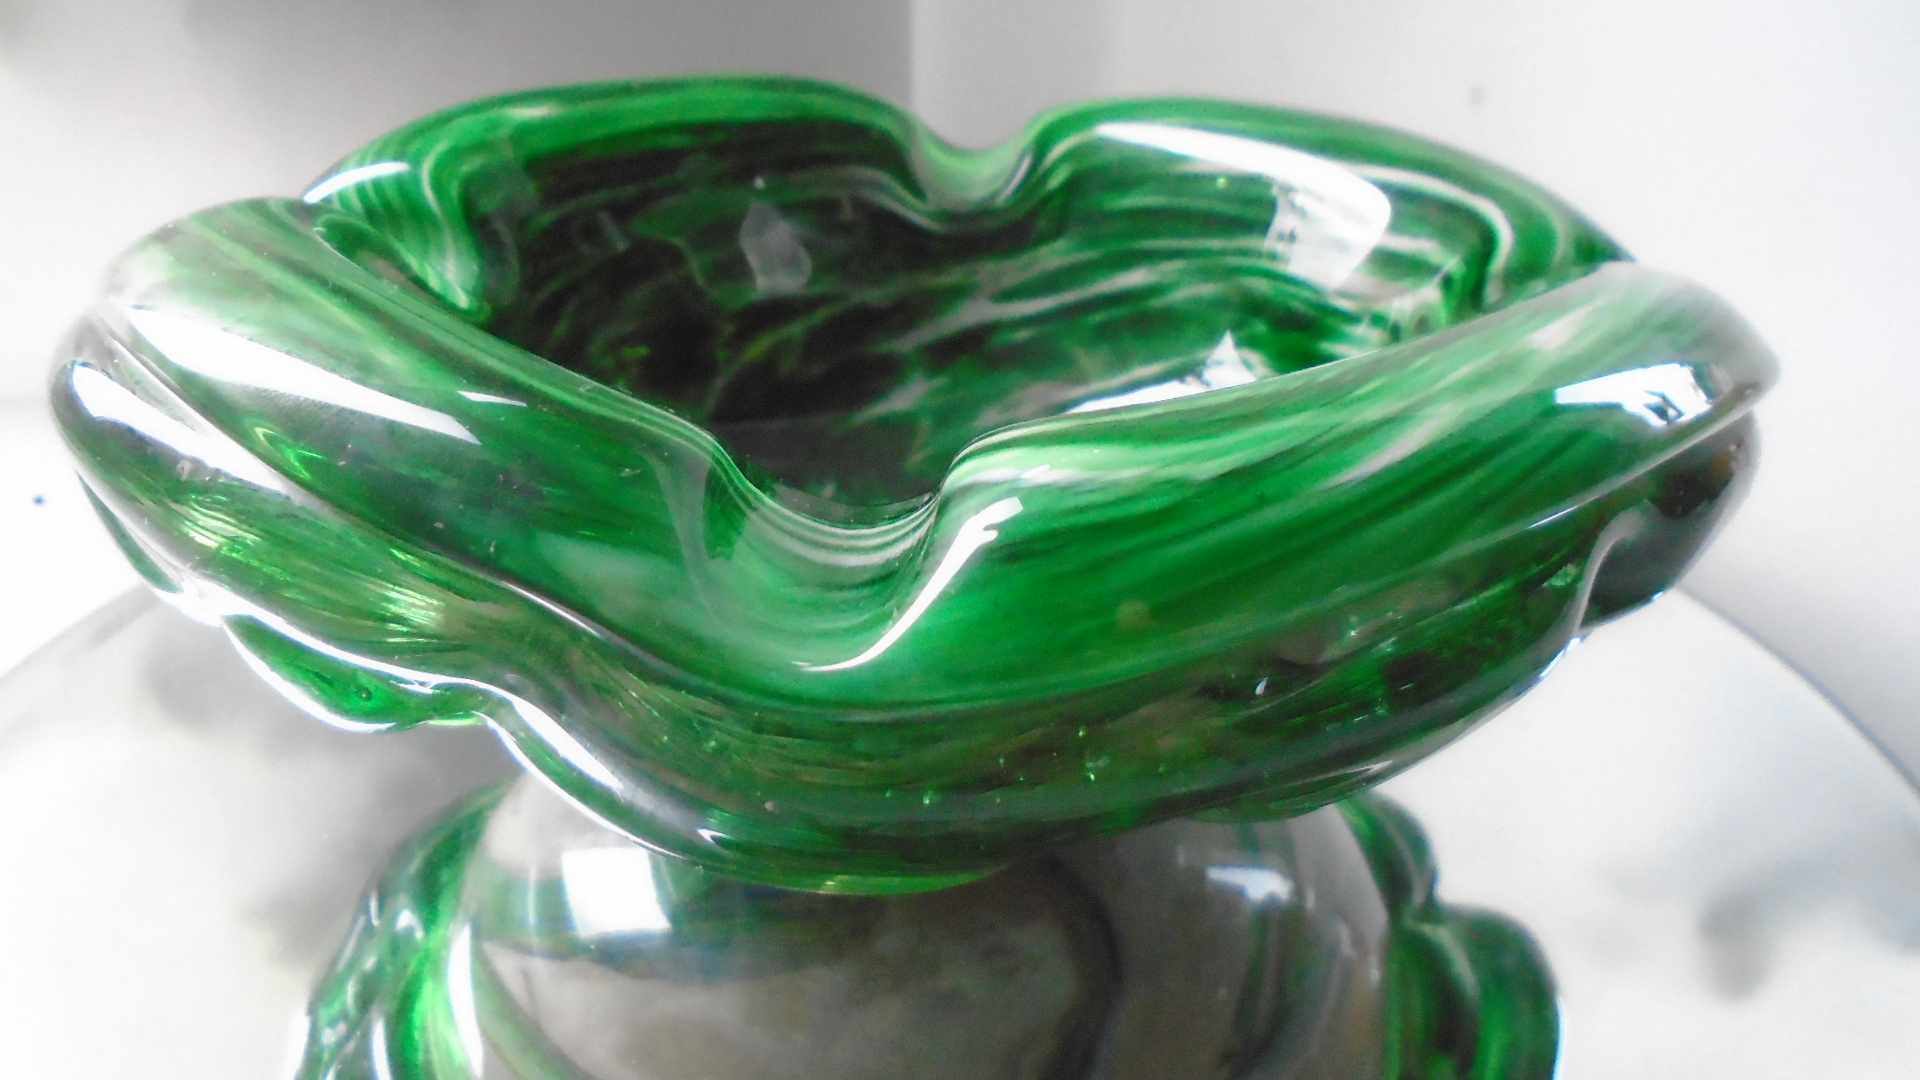 Unusual example of Maltese Glass in the form of this Vintage MTARFA GREEN GLASS BOWL.